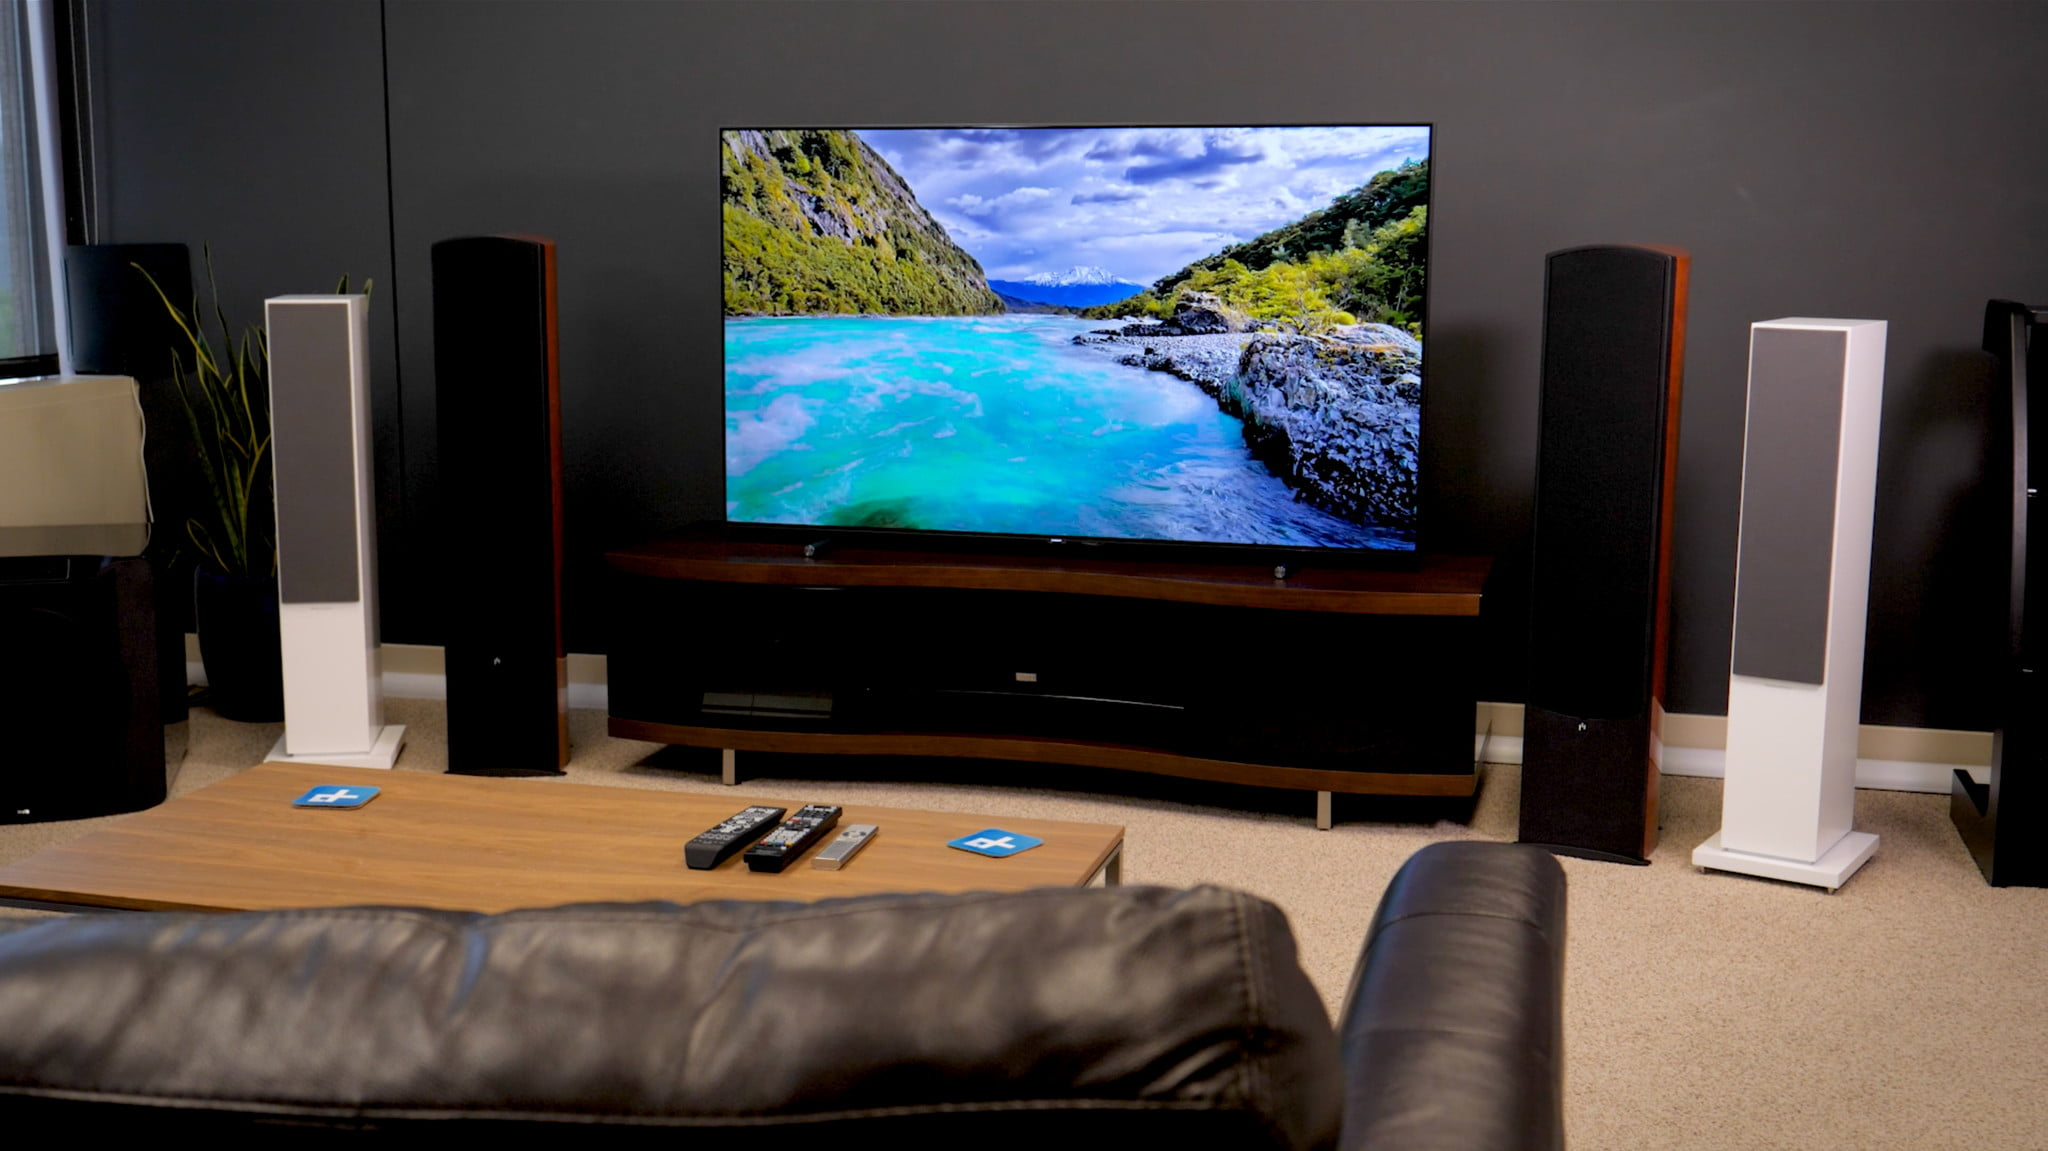 720p vs. 1080p vs. 4K UHD: What\u0027s the Best Resolution for Your TV